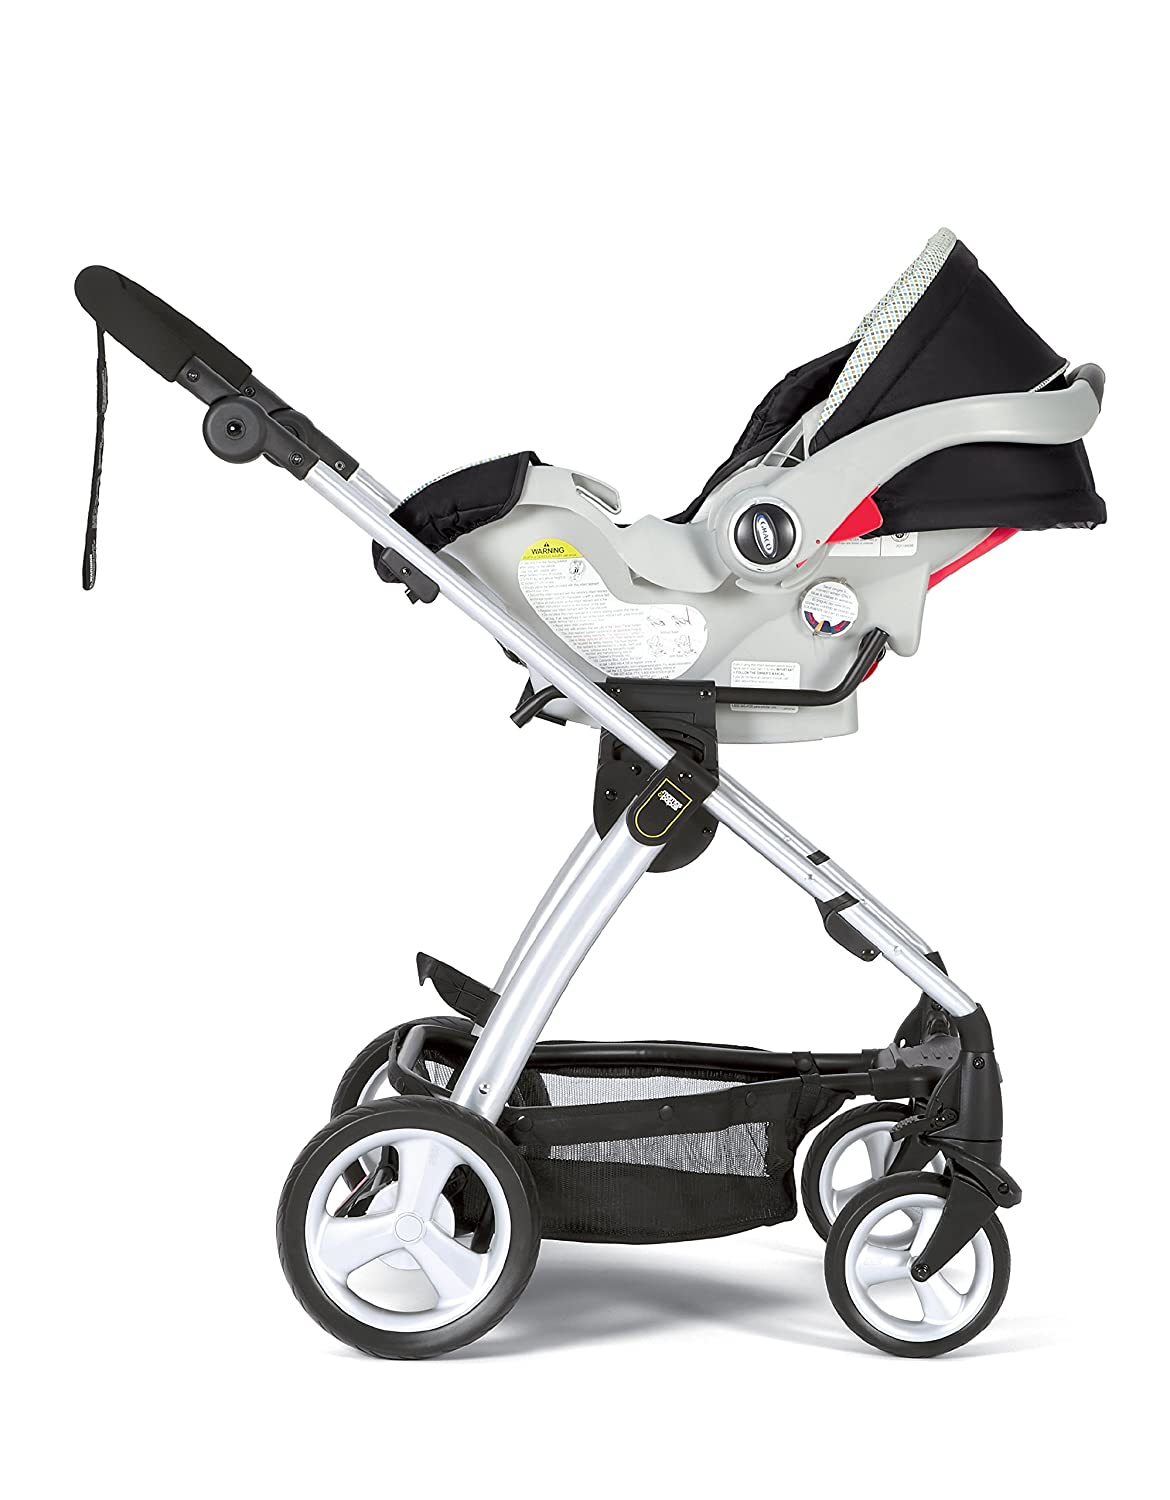 Mamas & Papas Pushchair From Birth Reversible Seat Parent Facing Option Lightweight 10kg Raincover Included